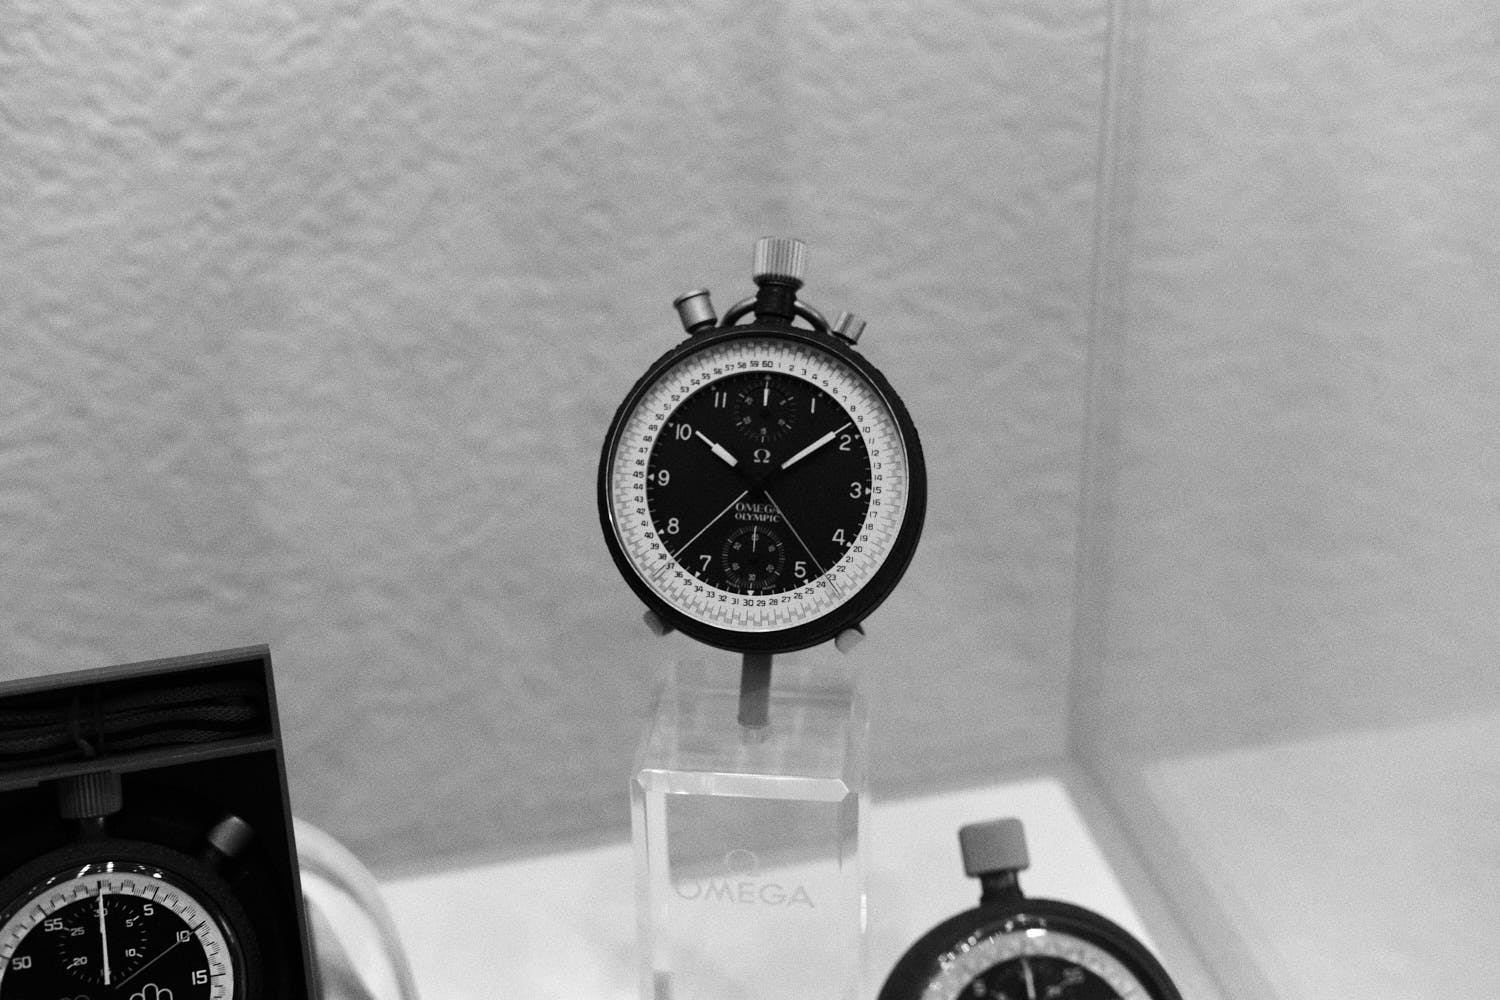 Nuit-Spatiale-Omega-Museum-Visit-Monochrome-Watches